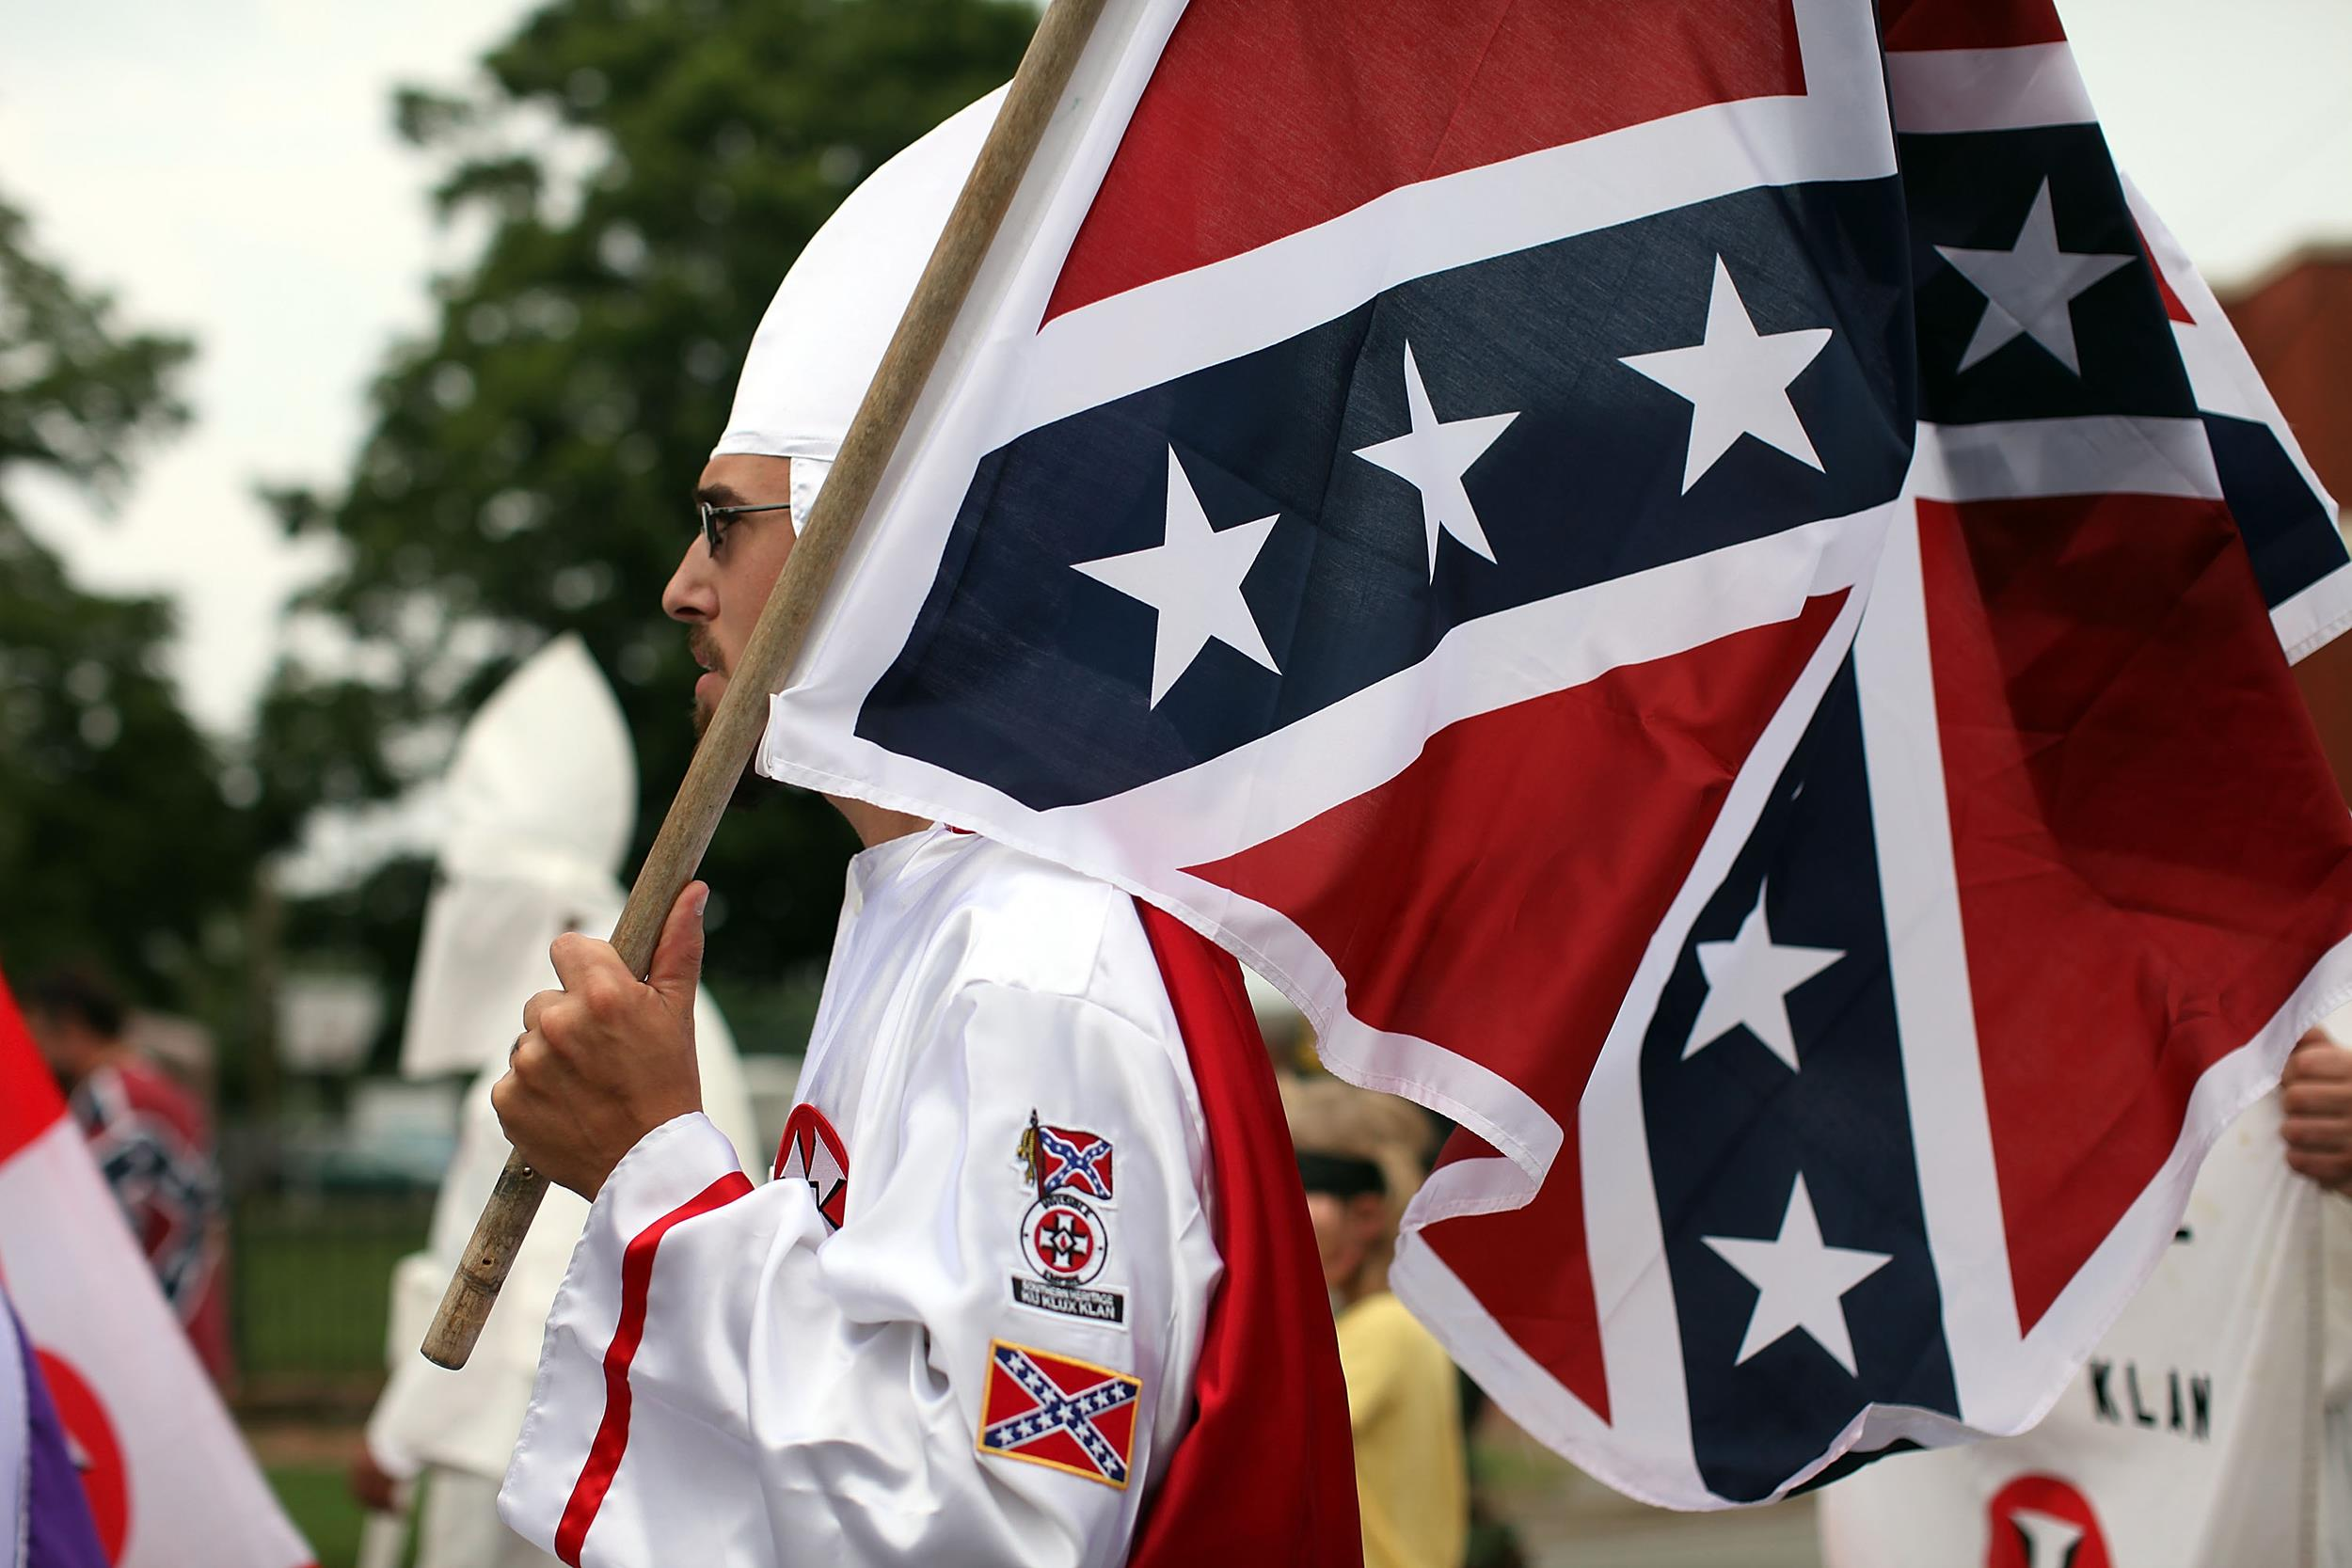 White Nationalism: The New (Old) Rebellion